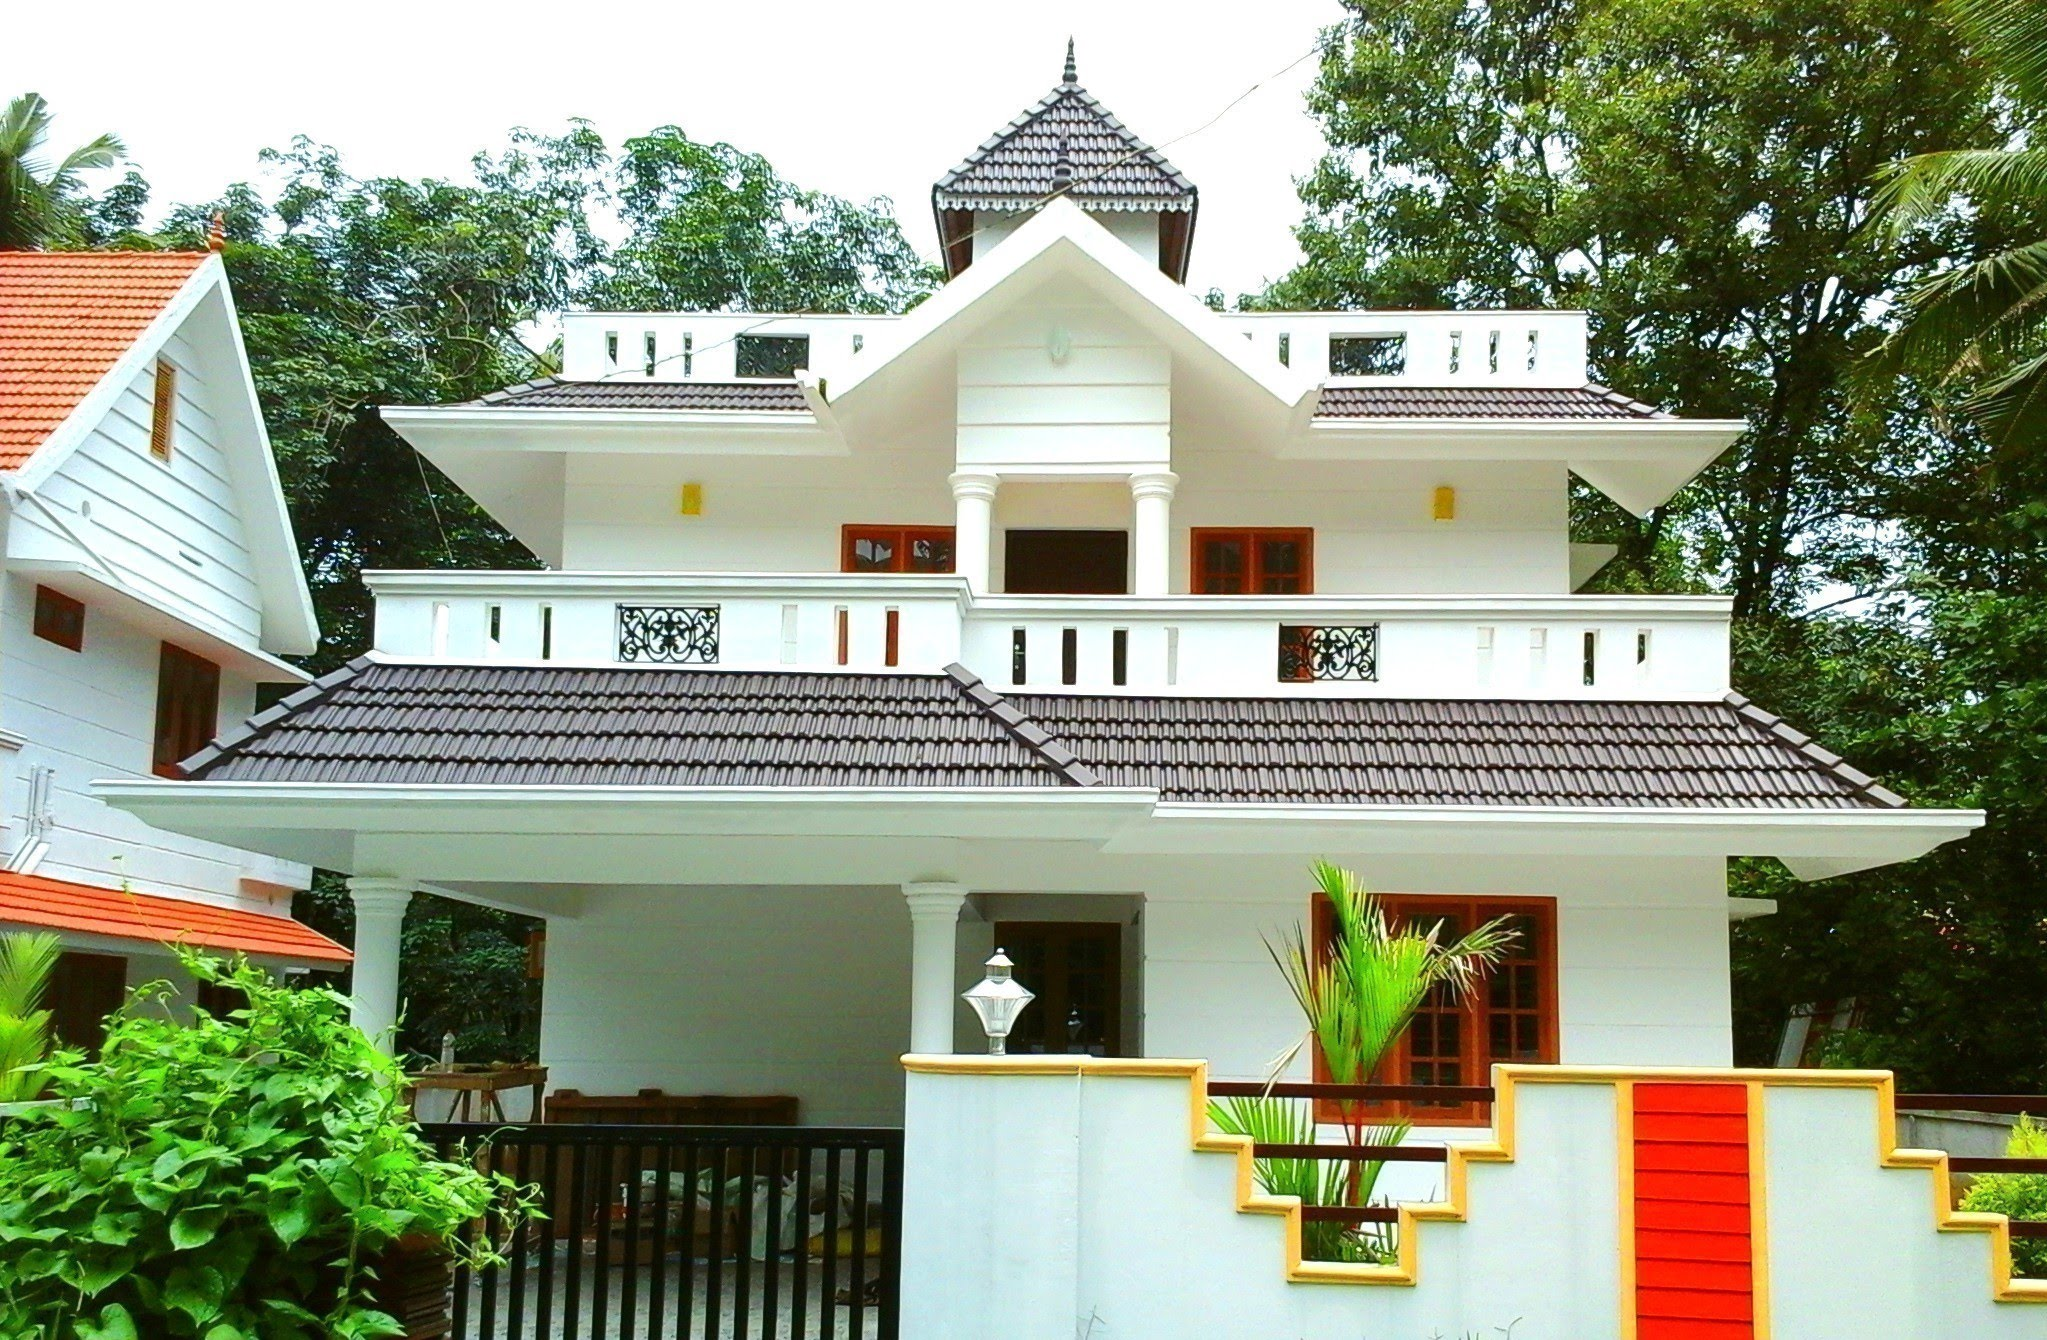 Understanding a traditional kerala styled house design for Sloped roof house plans in india